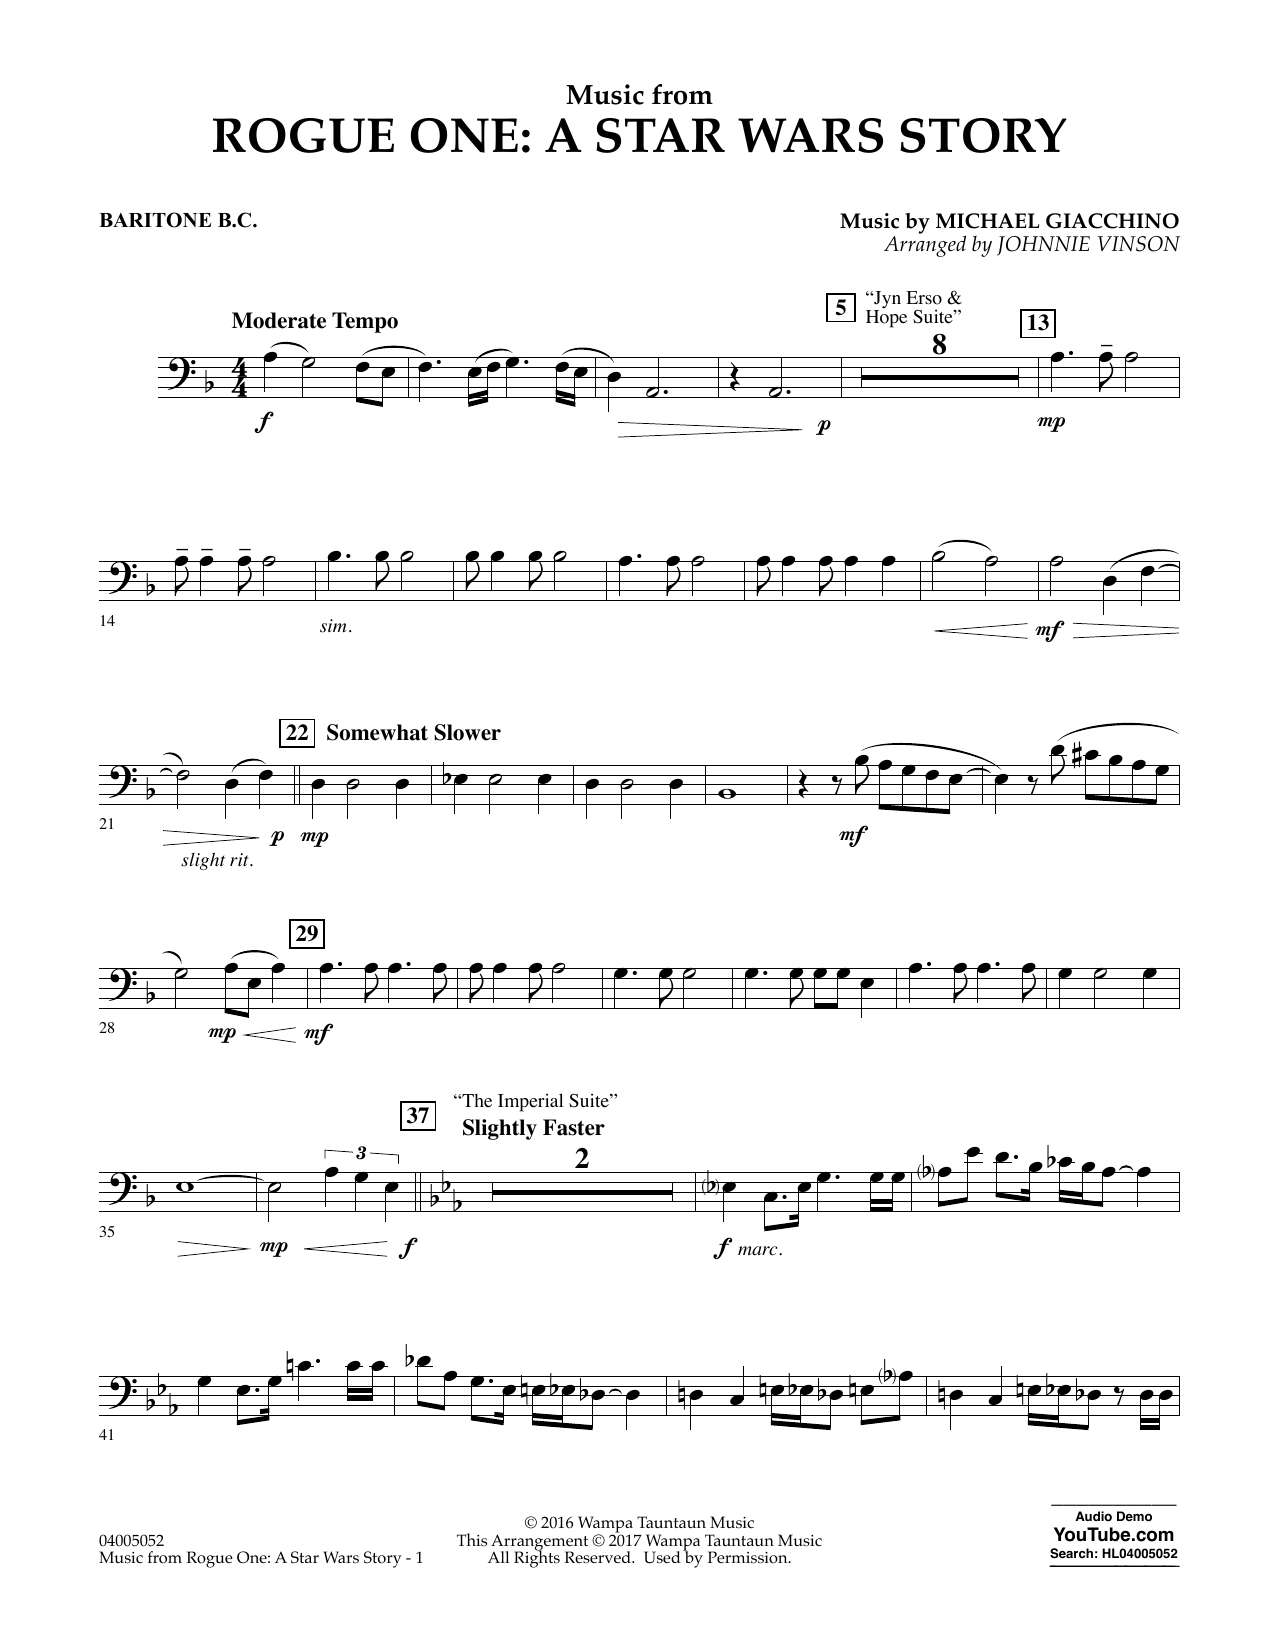 Music from Rogue One: A Star Wars Story - Baritone B.C. Sheet Music